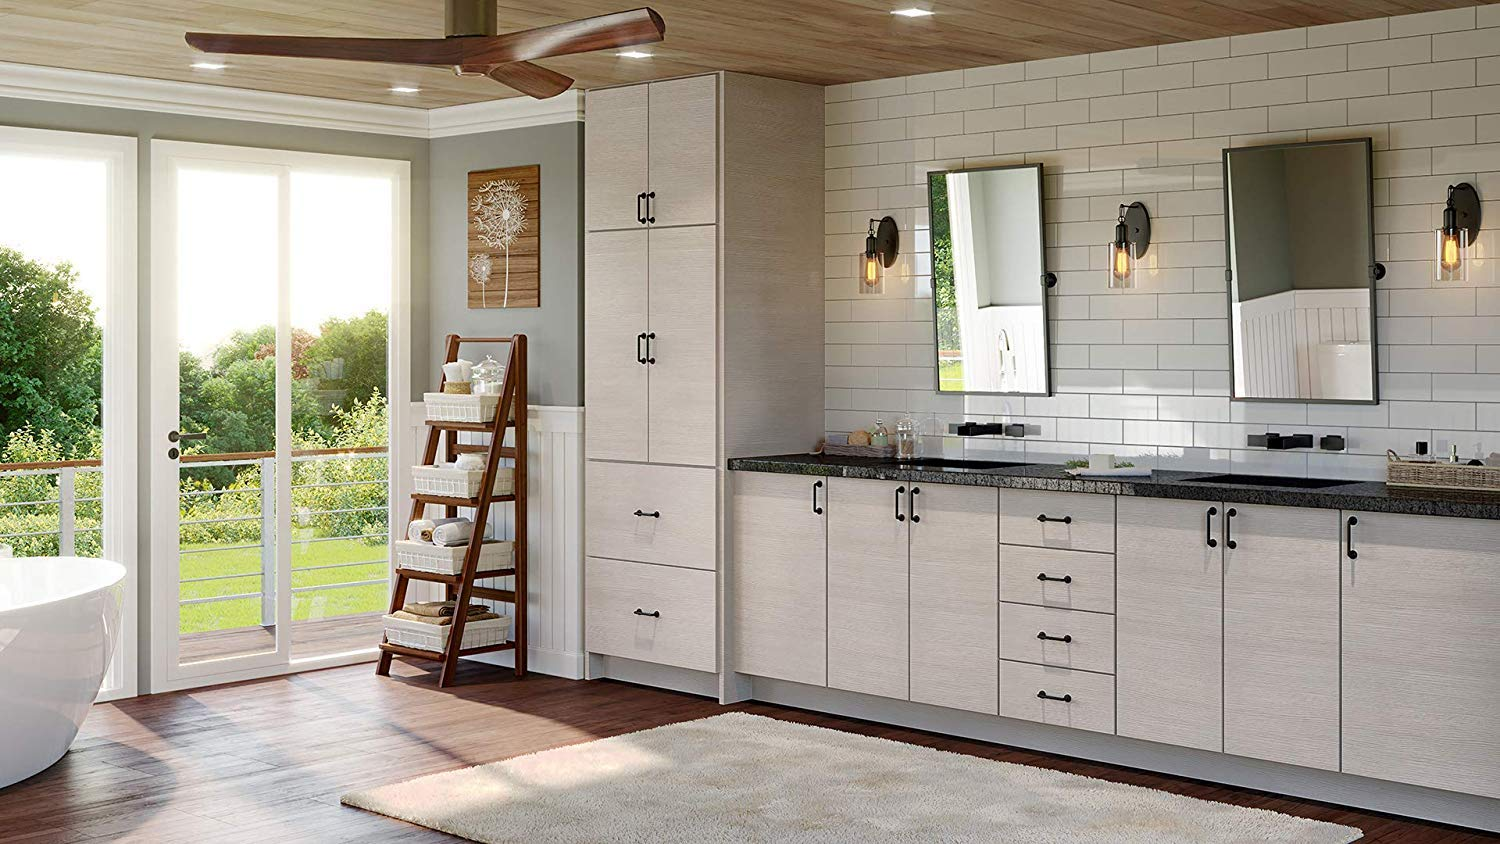 Modern Grey Wood Kitchen Cabinet Textured Woodgrain Frameless Construction Tall Single Oven Built in Cabinet